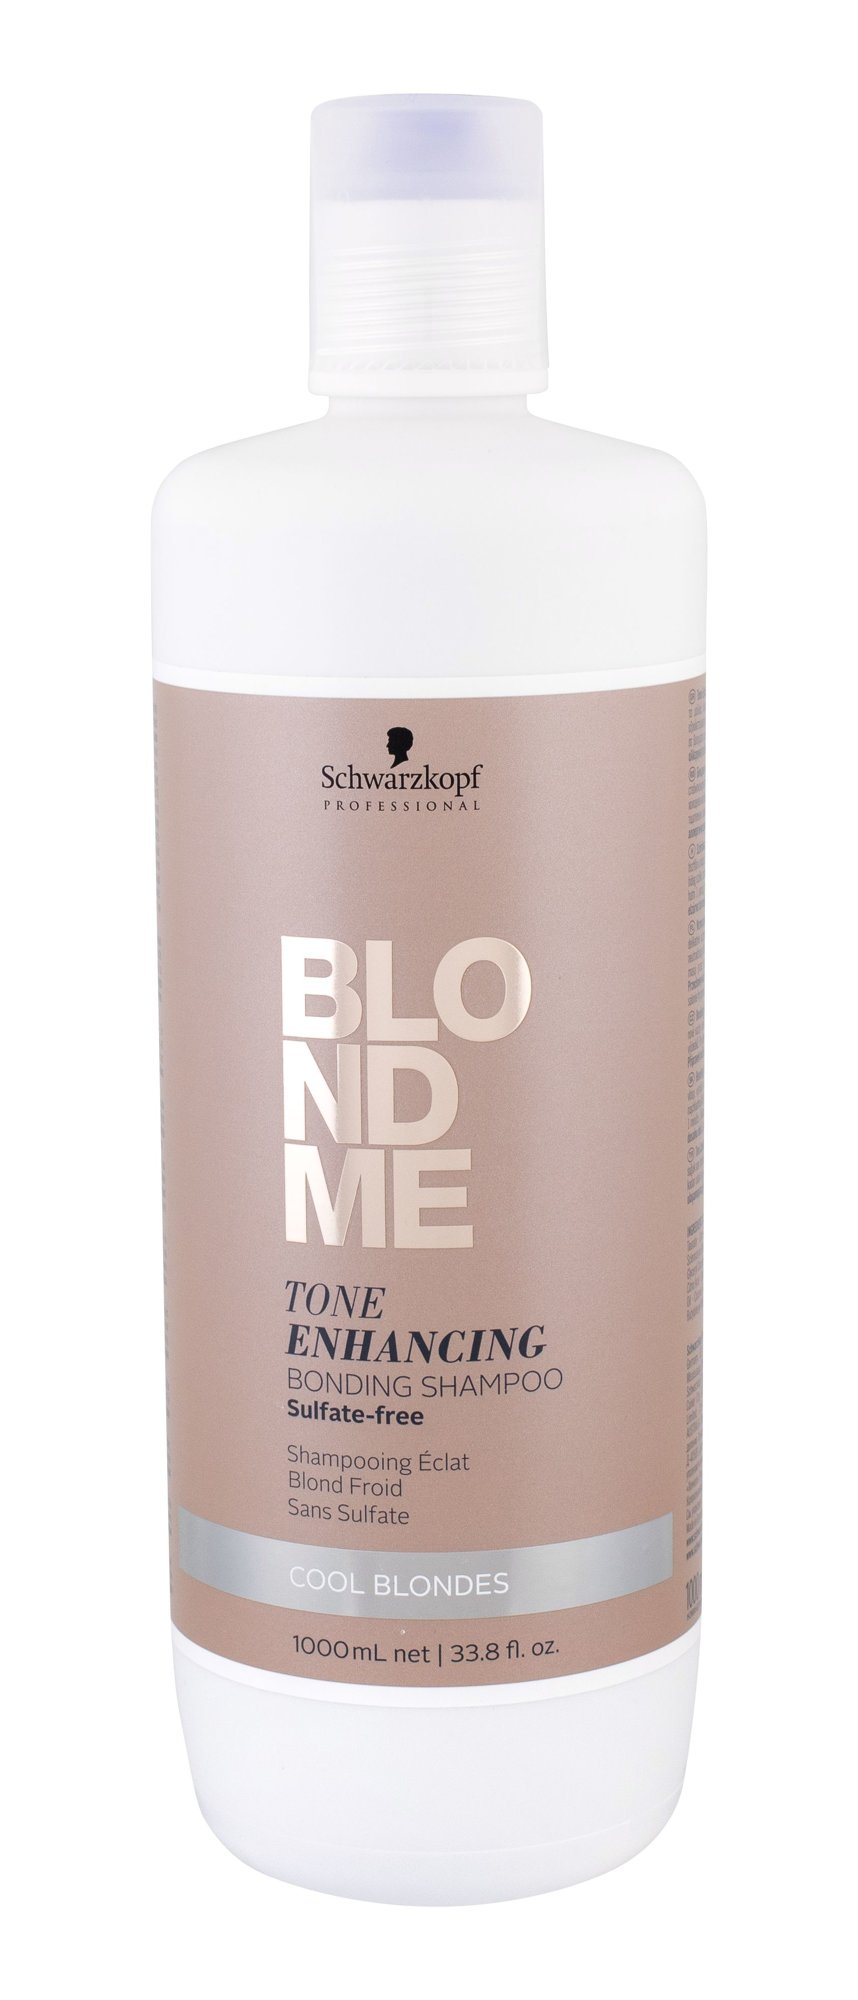 Schwarzkopf Blond Me Shampoo 1000ml Cool Blondes